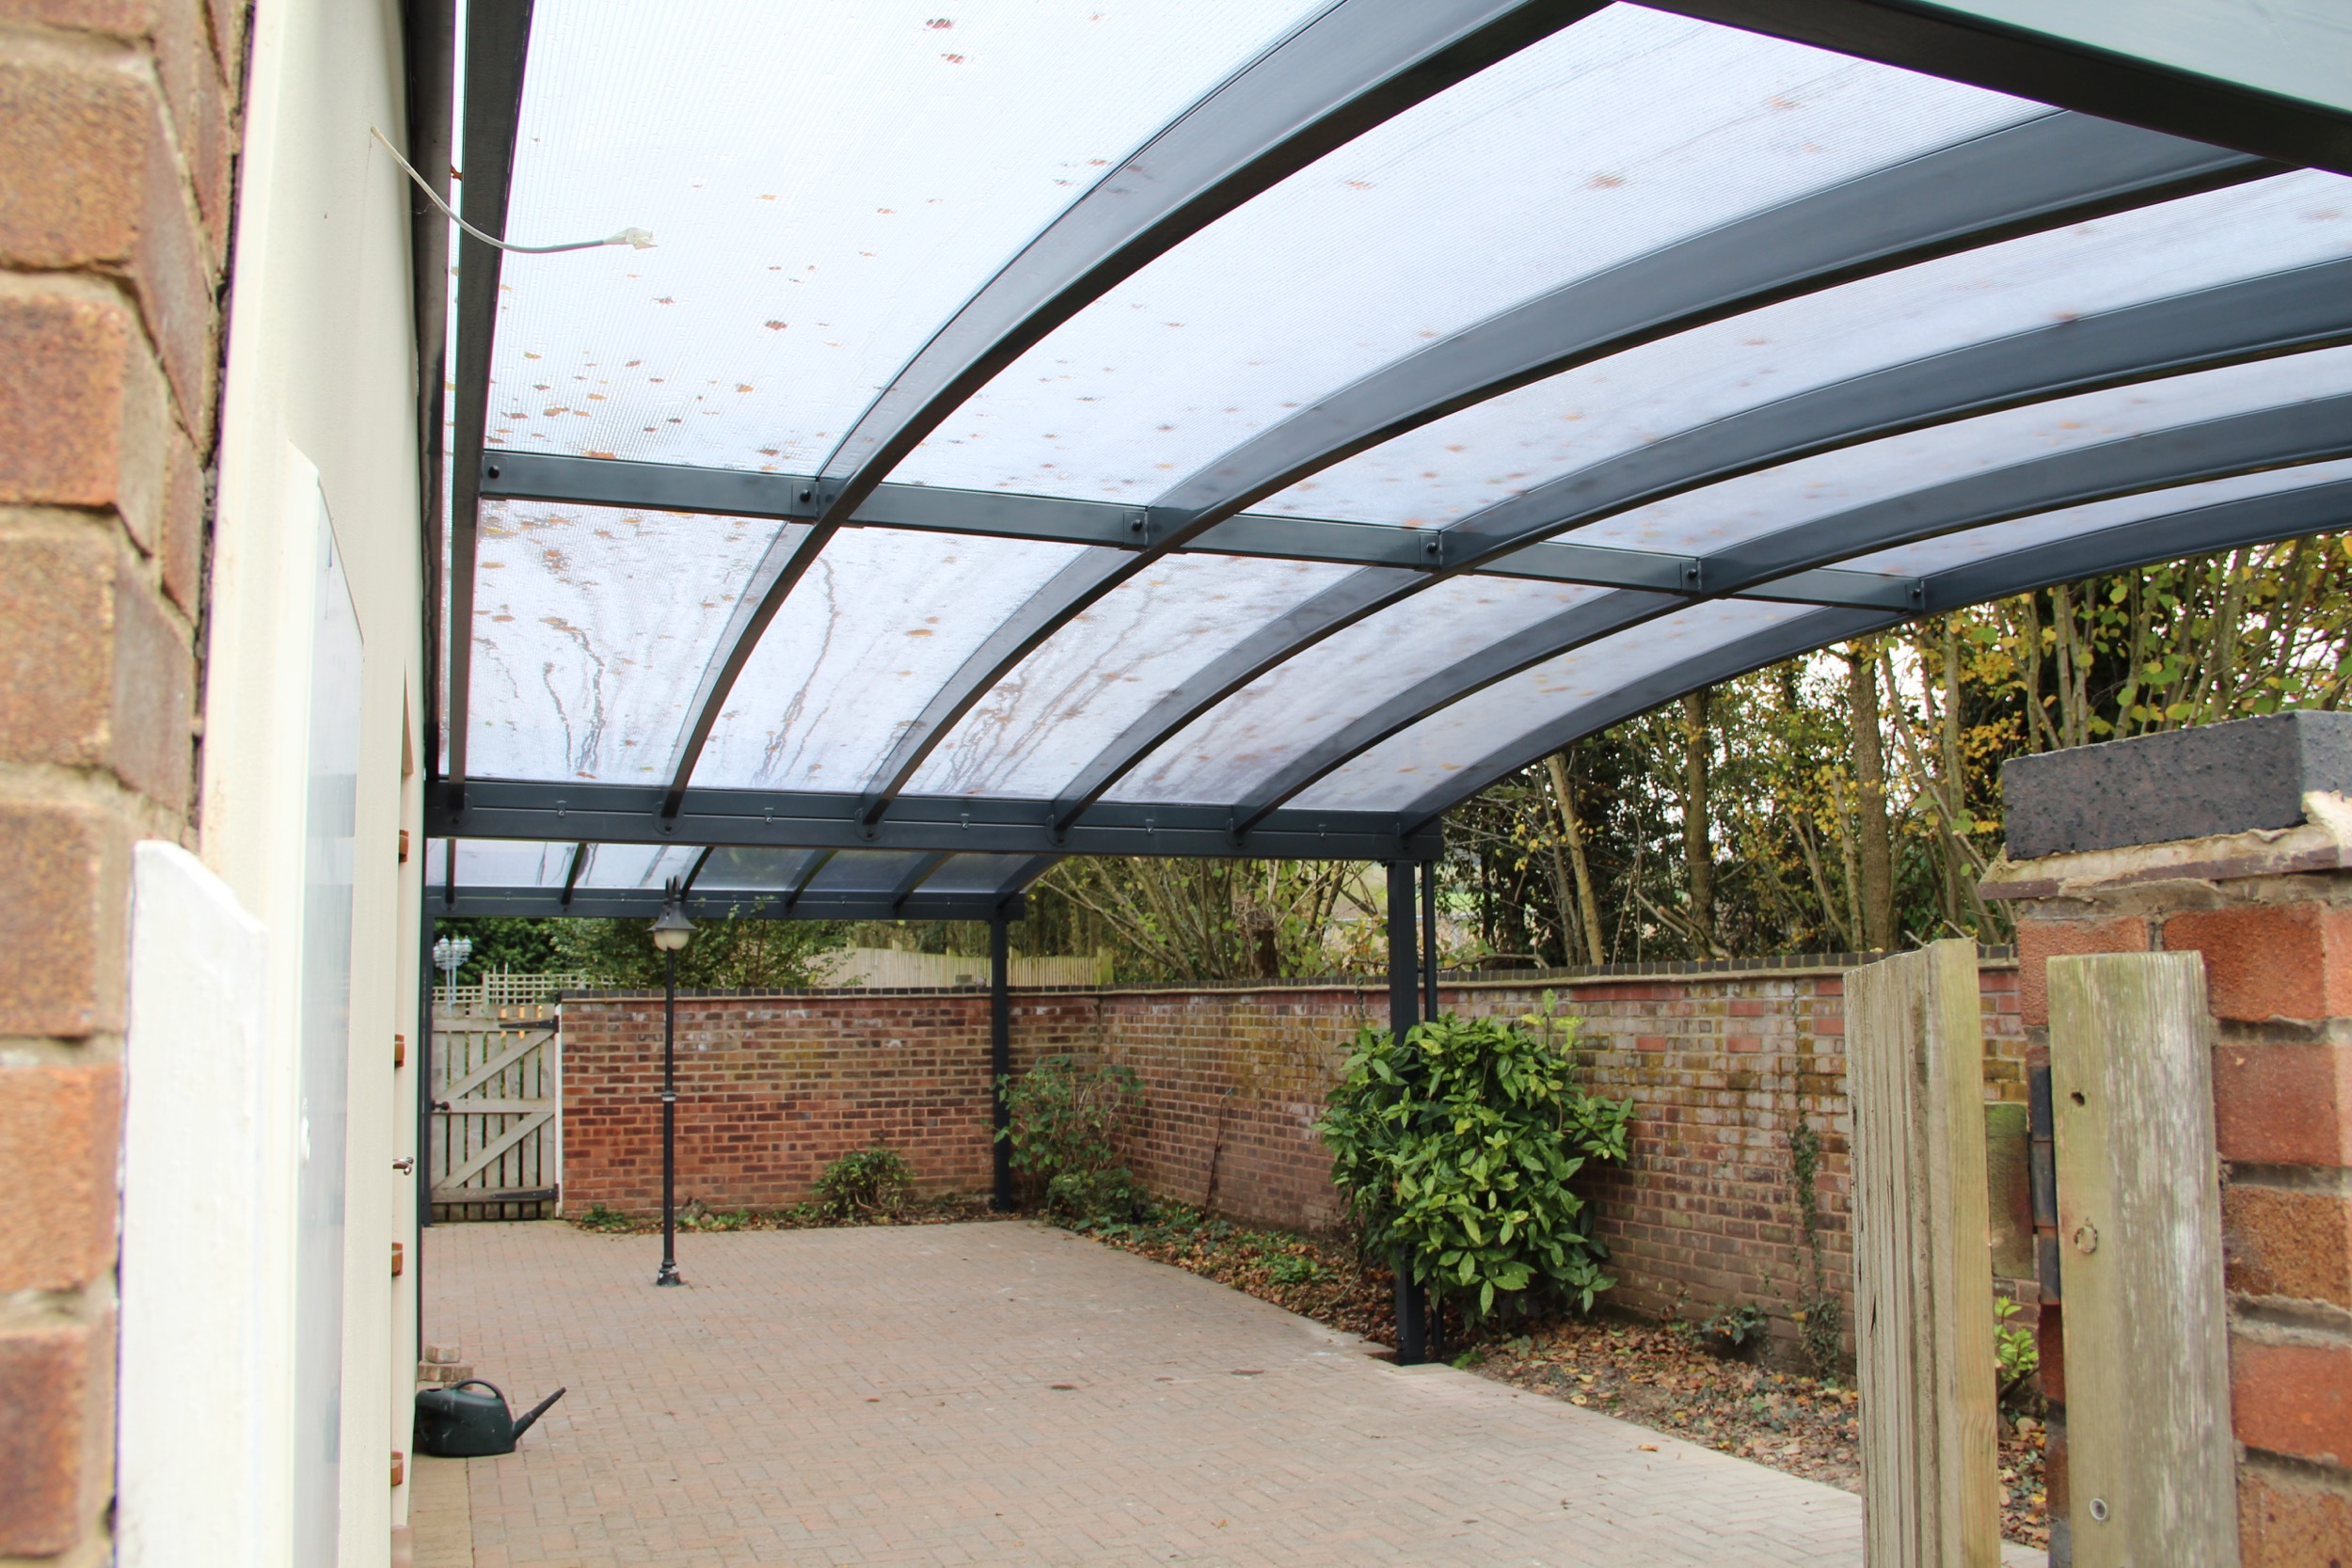 Canopies And Carports : Courtyard canopy installed warwickshire kappion carports